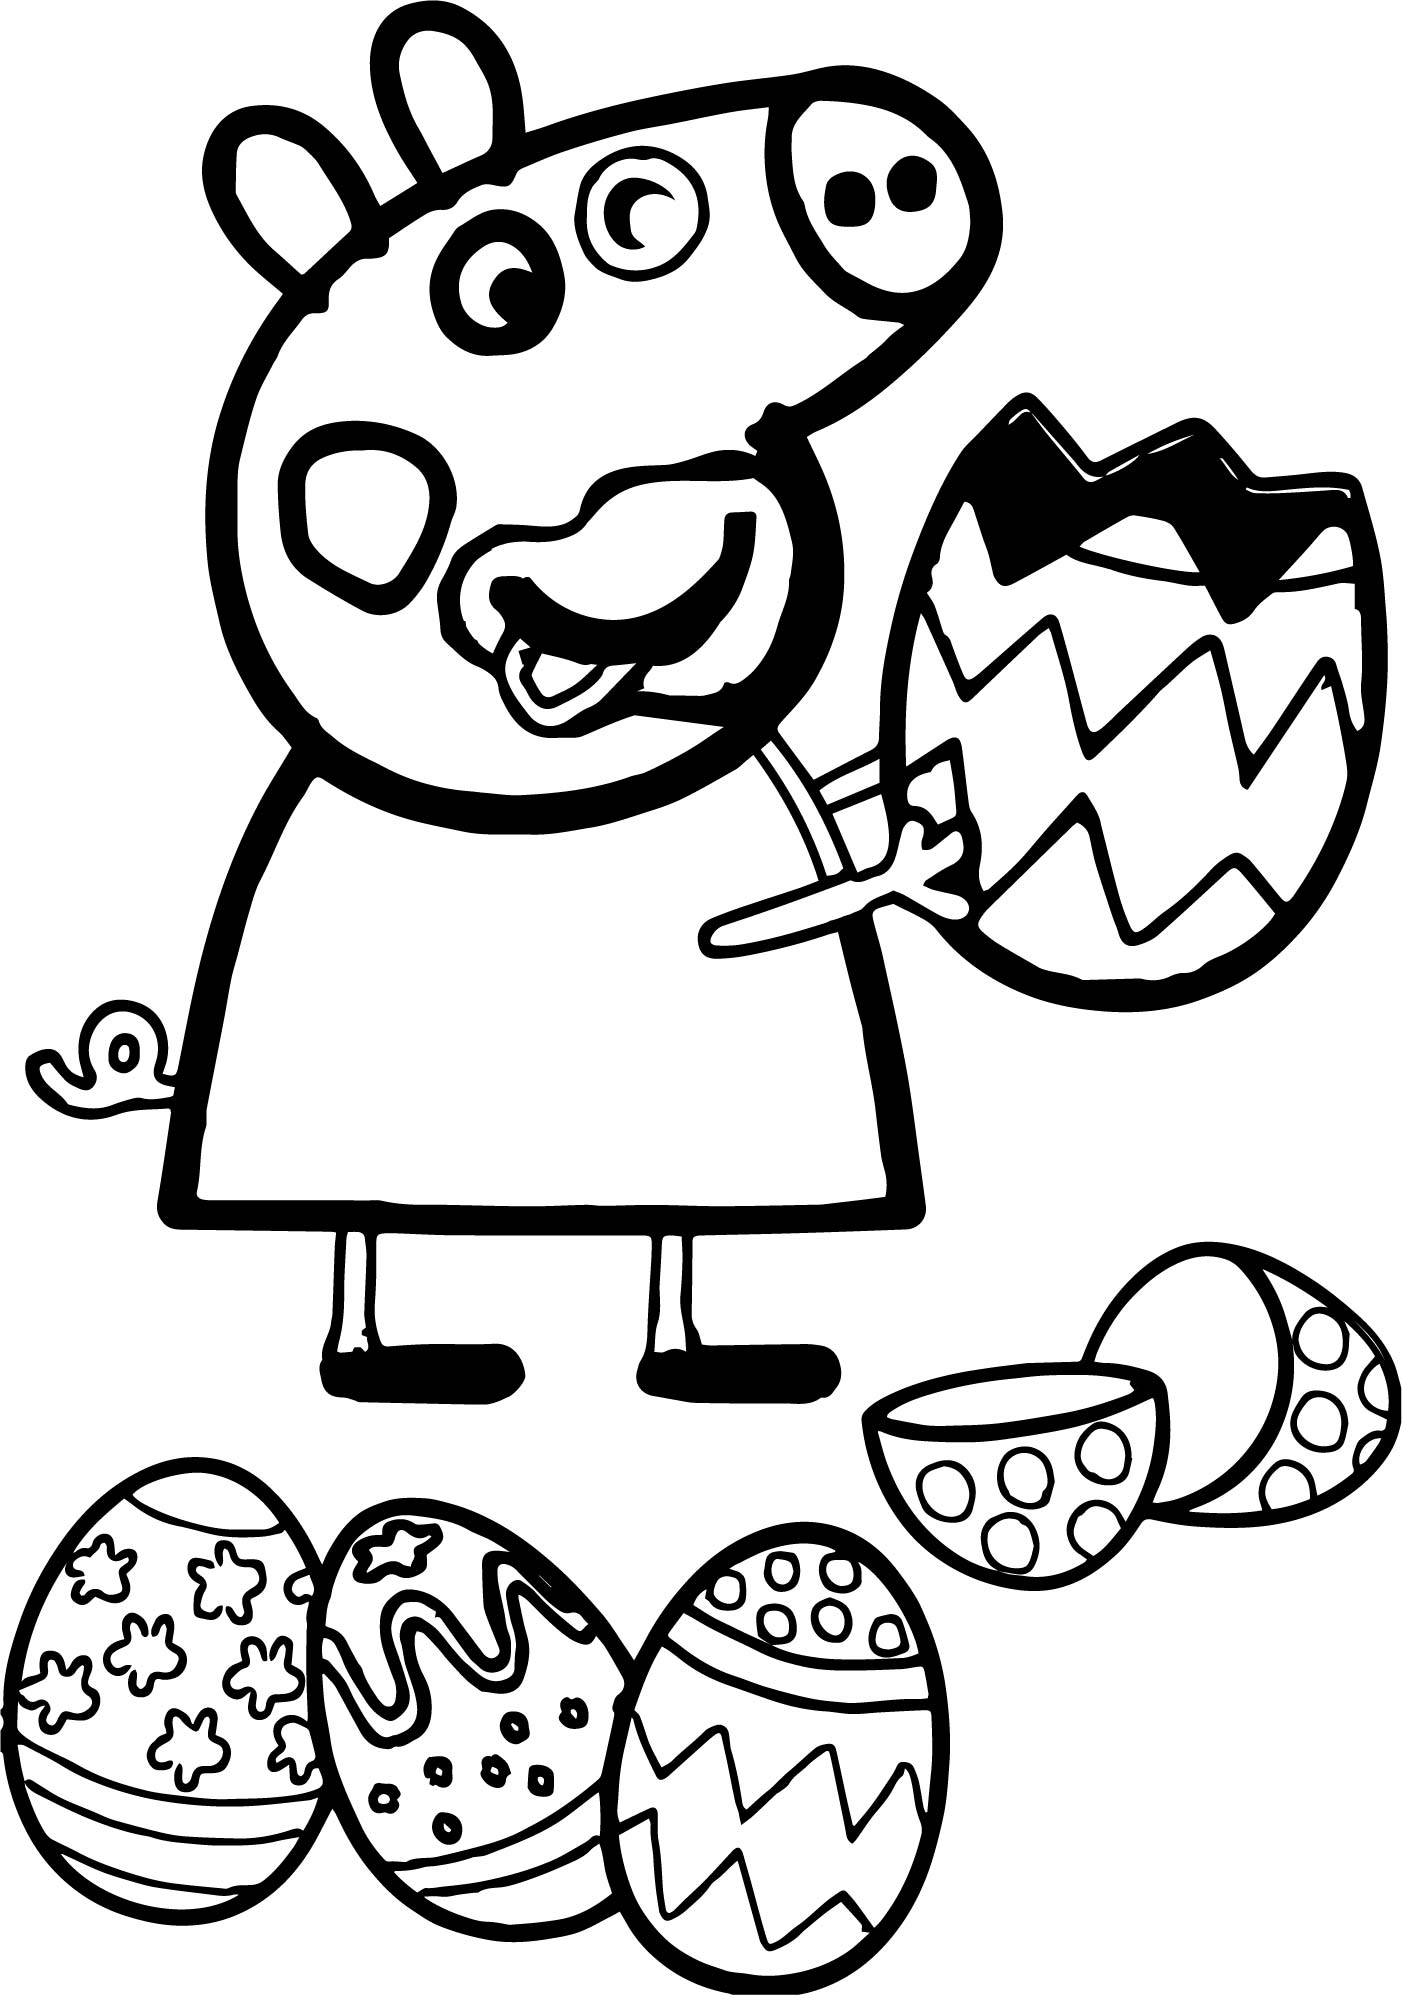 Peppa Pig Funny Eating Easter Egg Coloring Page